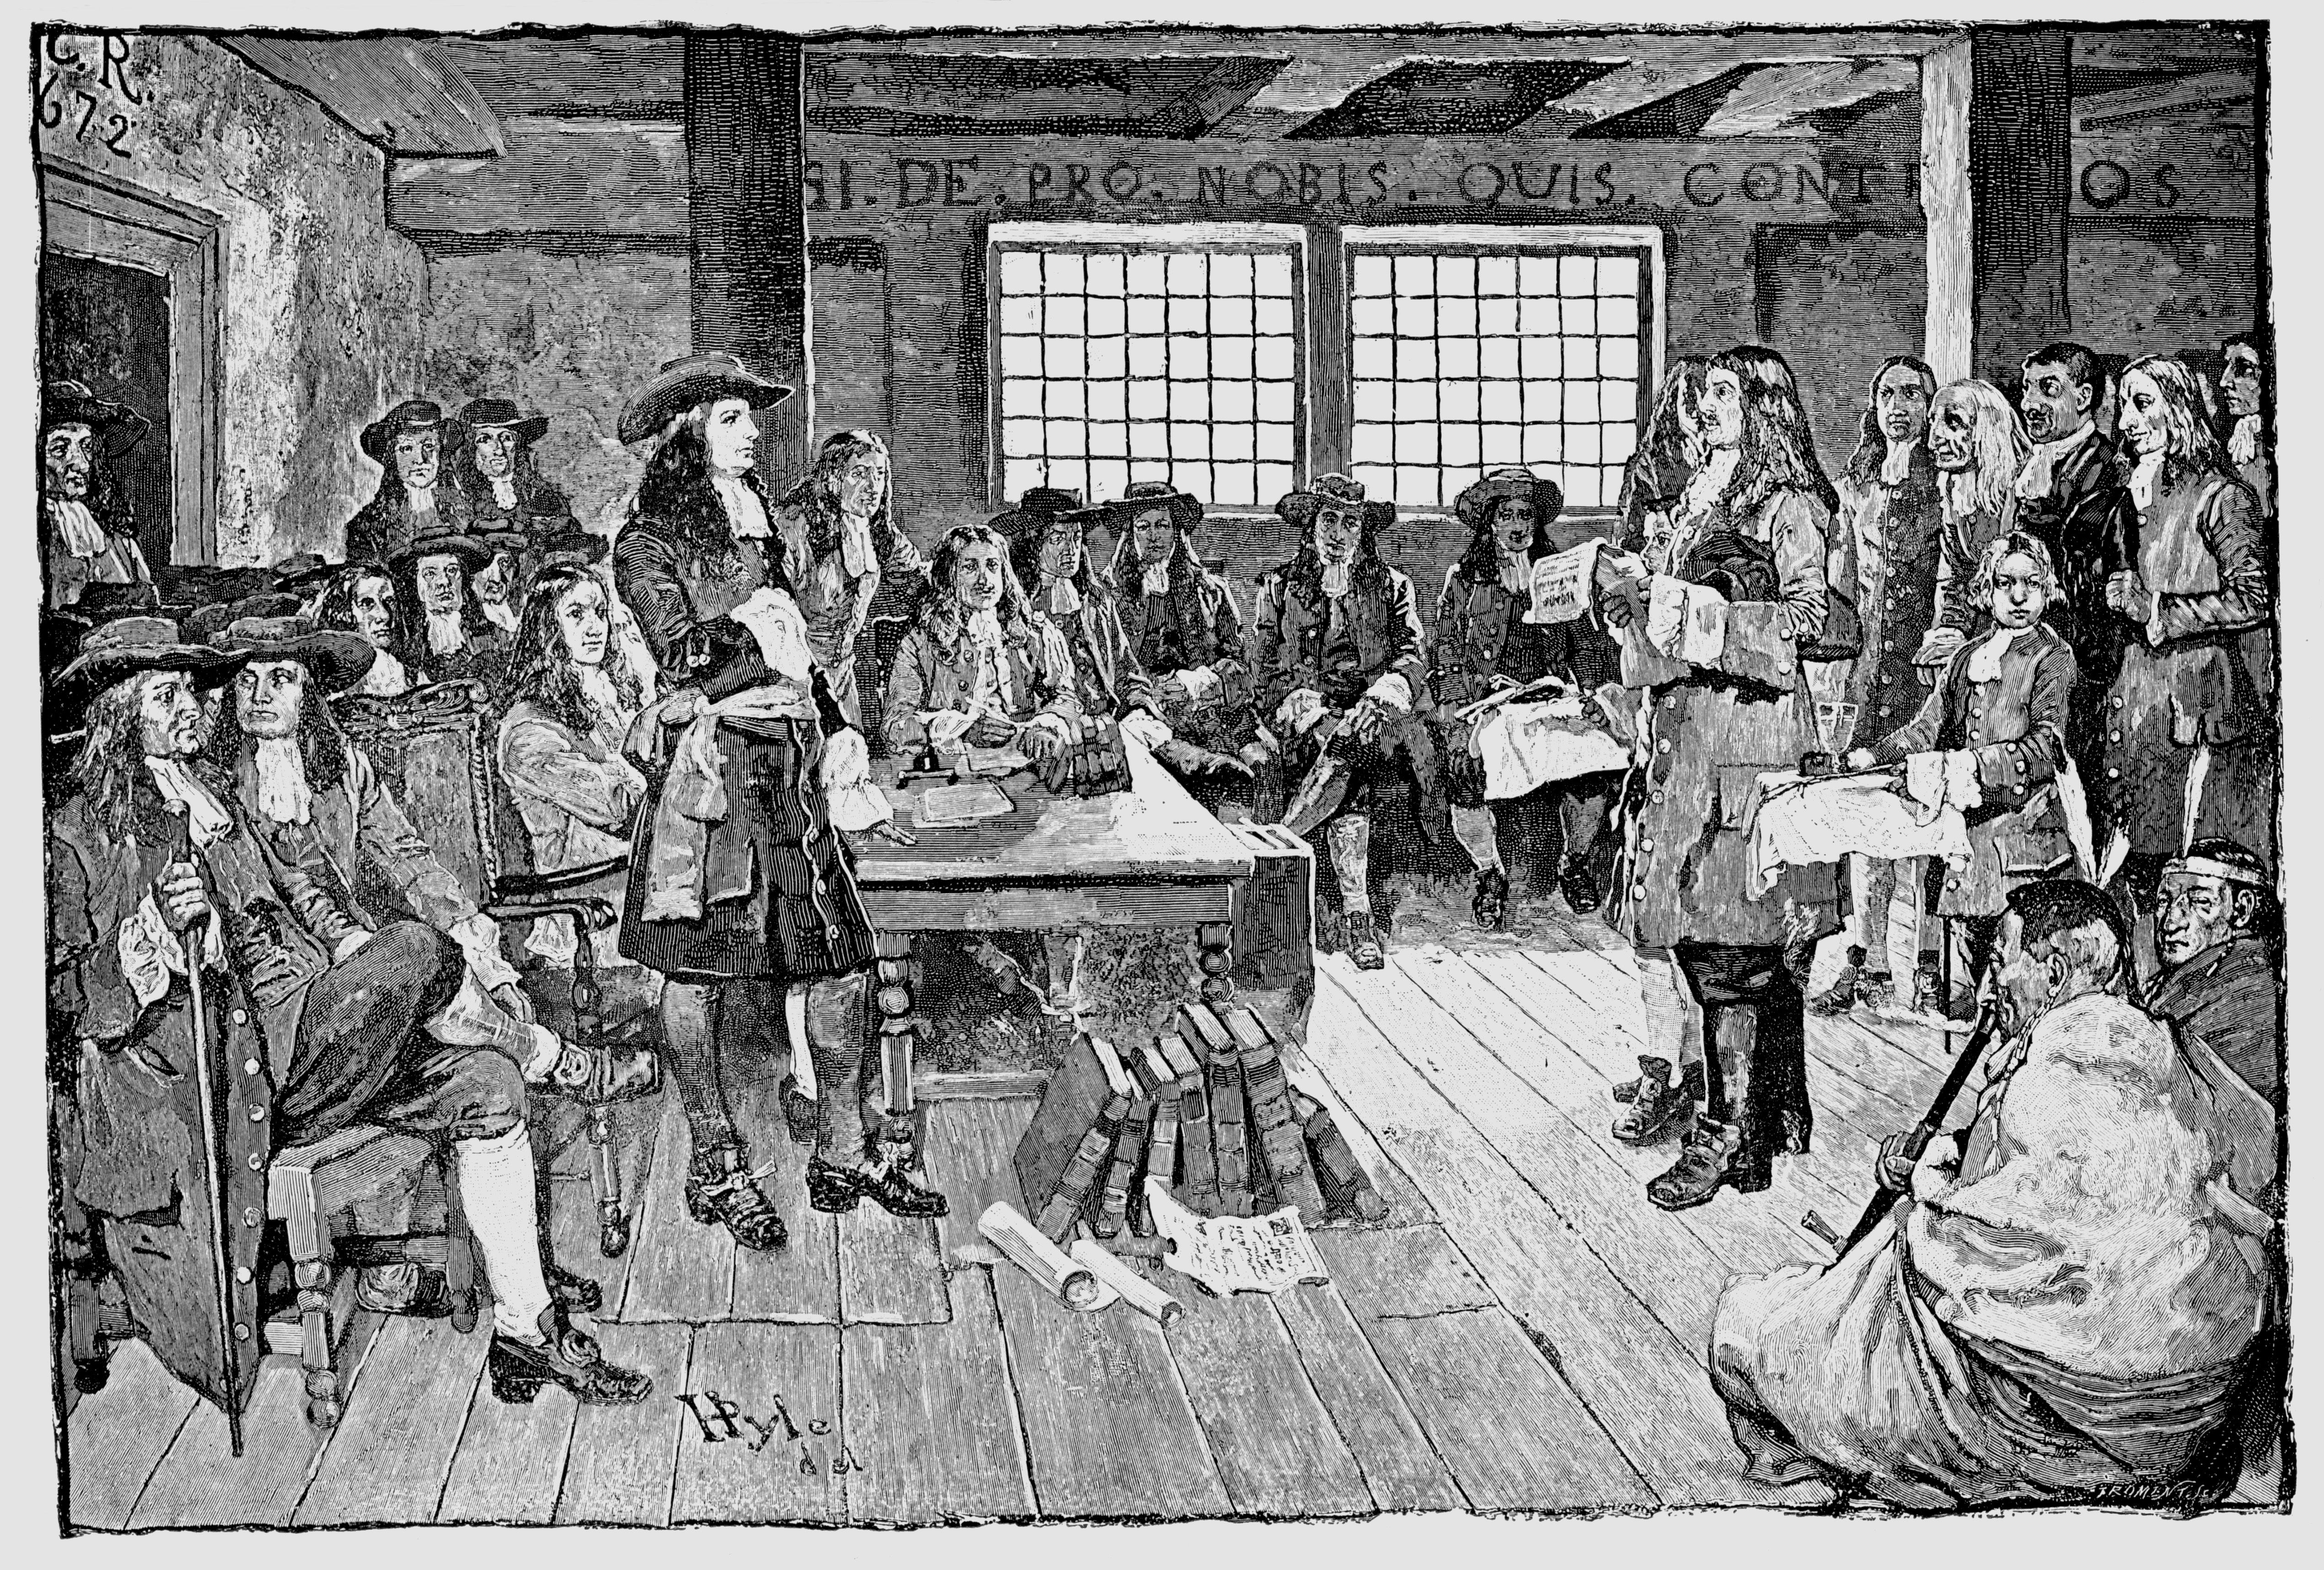 William Penn (1644-1718) English Quaker and colonialist, founder of Pennsylvania, 1682.